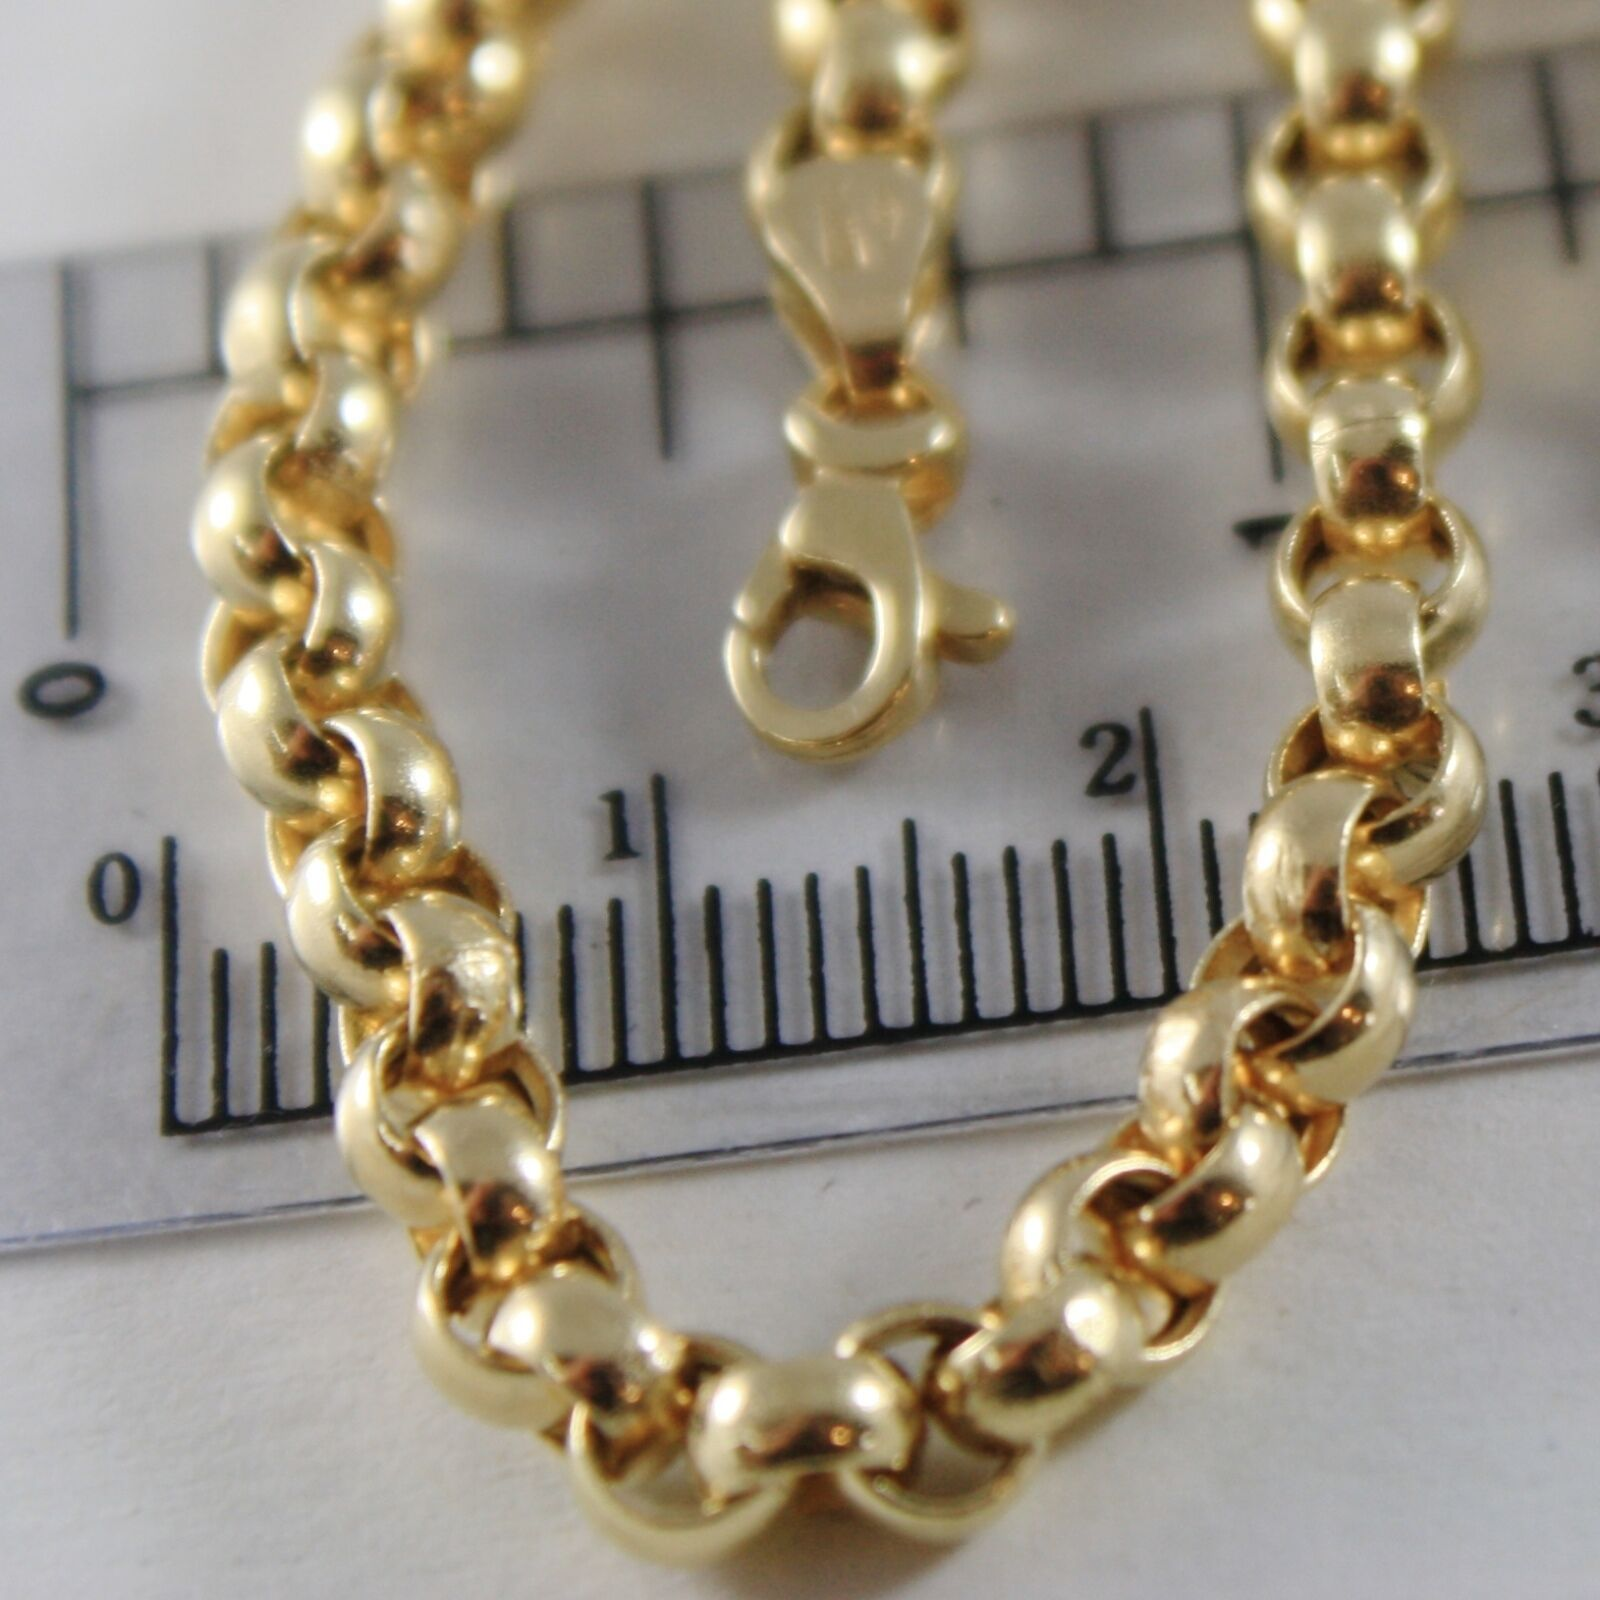 18K YELLOW GOLD BRACELET 7.5 IN, BIG ROUND CIRCLE ROLO LINK, 4 MM MADE IN ITALY image 2